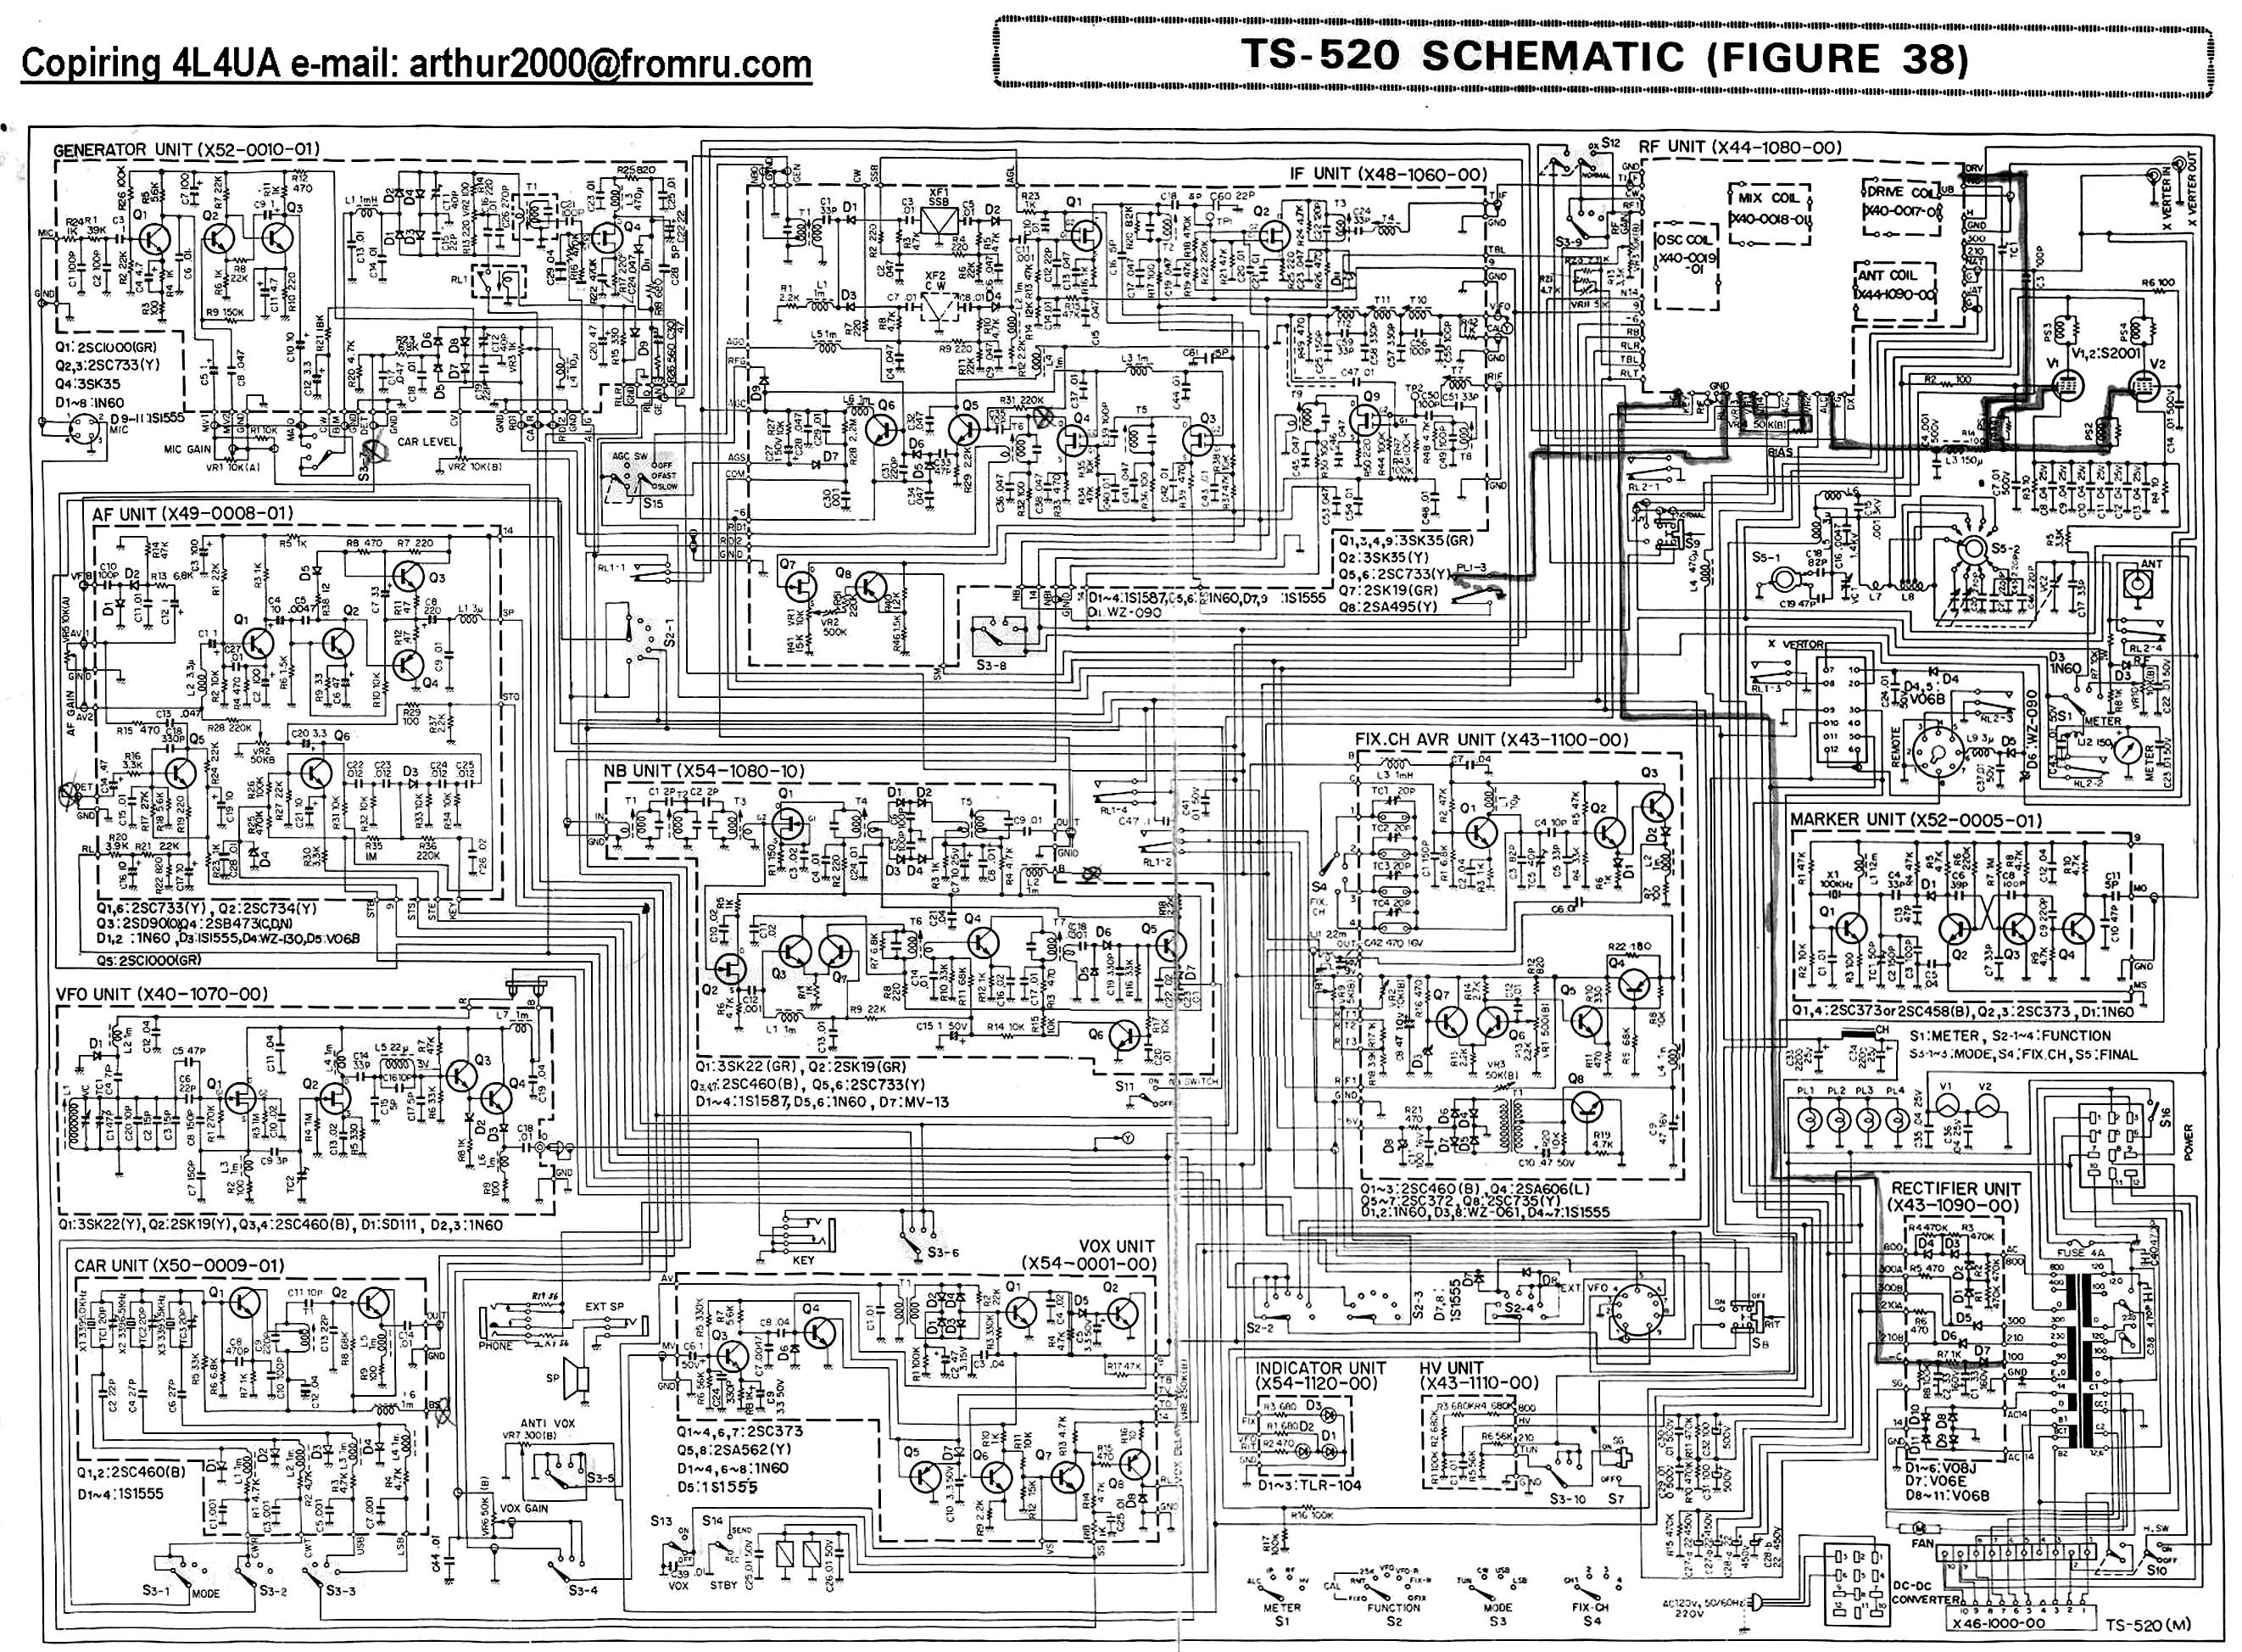 Shure 444 Microphone Wiring Diagram Free Picture Starting Know Cobra Power Mic Kenwood Ts 520s Schematic Get Image About